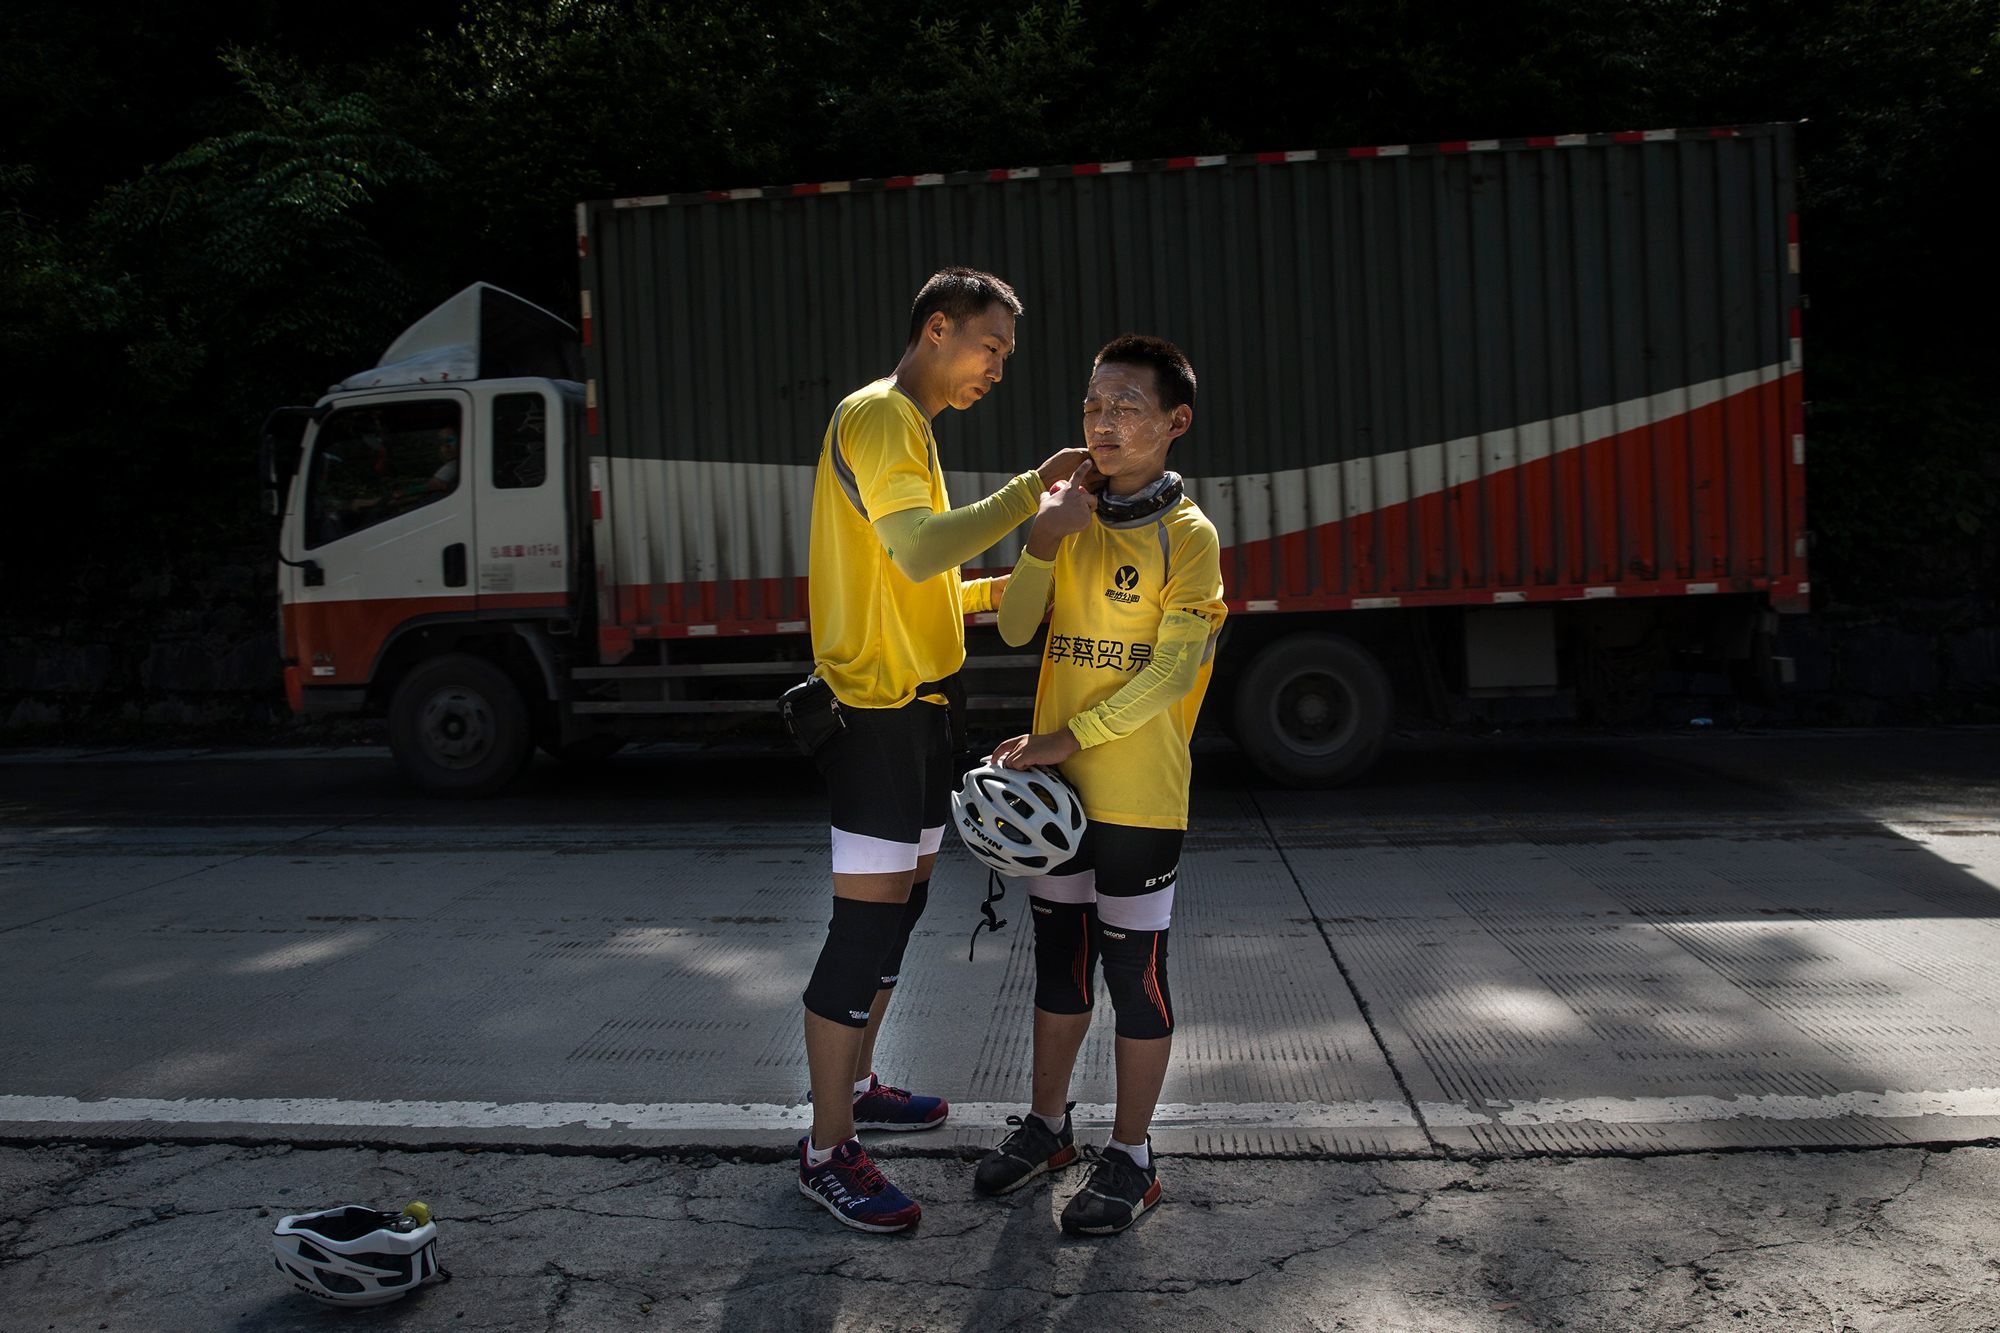 Chao applies sunscreen to Runxi's face on Mount Erlang, in Tianquan county of Ya'an city, Sichuan province, July 17. Their route that day traverses the mountain through a 2.6-mile tunnel.